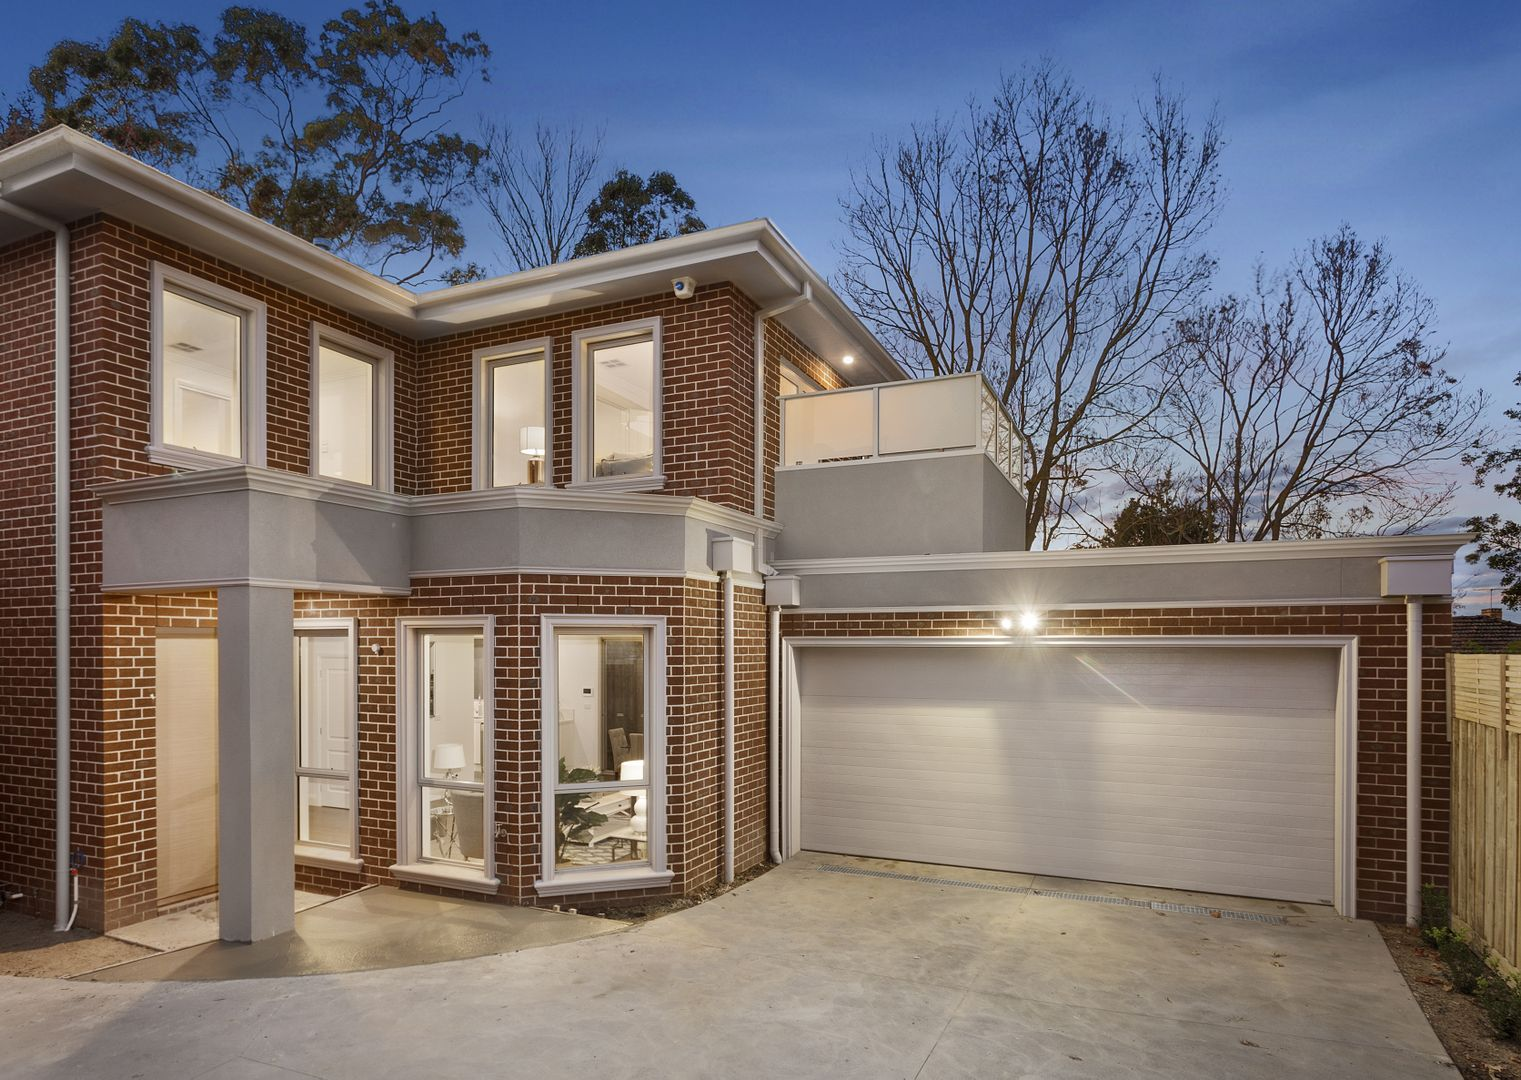 3/98 Clyde Street, Box Hill North VIC 3129, Image 0